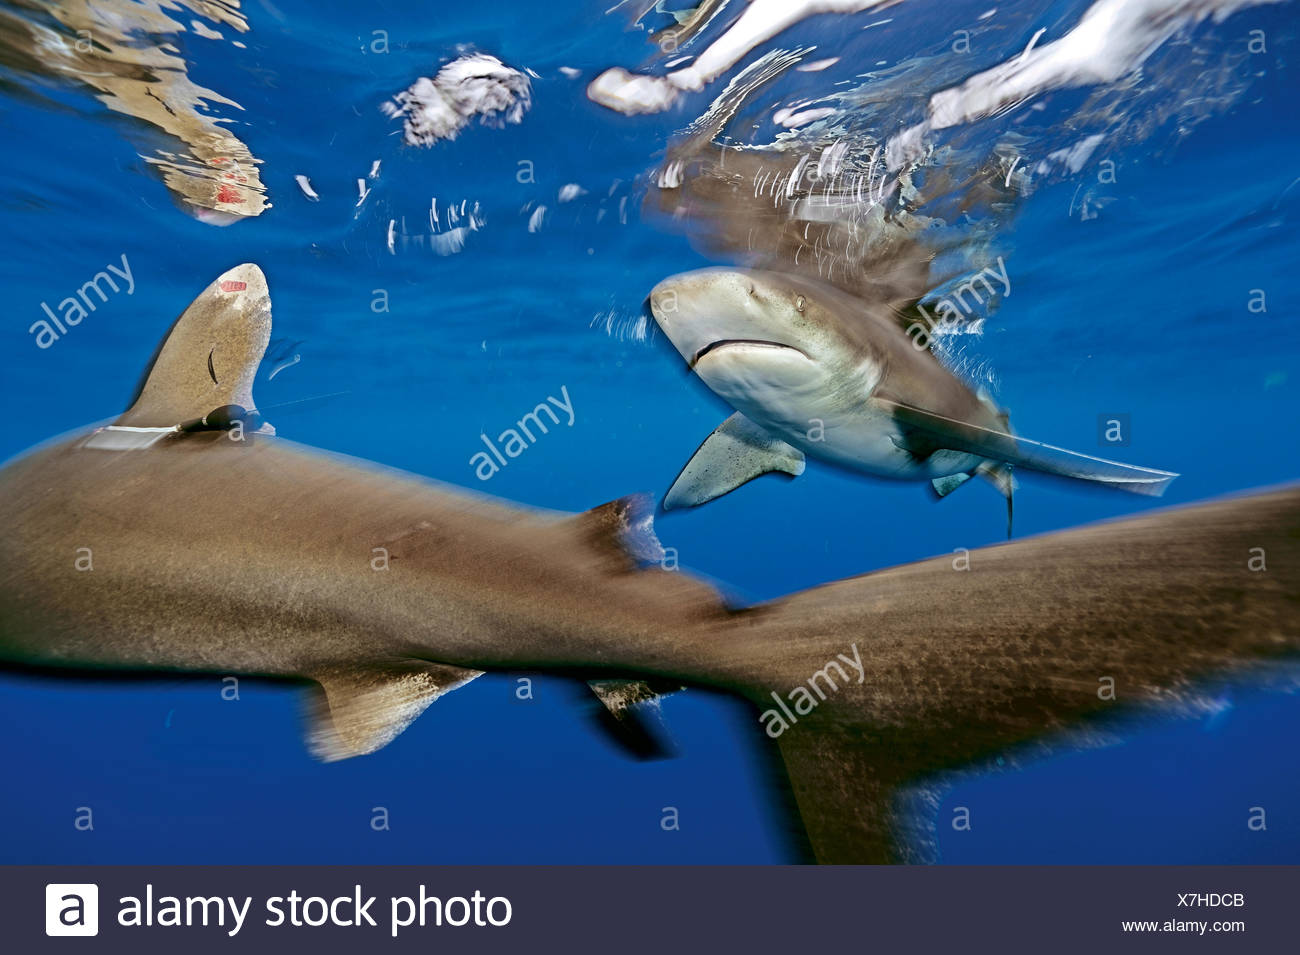 An oceanic whitetip shark, Carcharhinus longimanus, with satellite and identification tags, swims in the waters off Cat Island in the Bahamas. - Stock Image